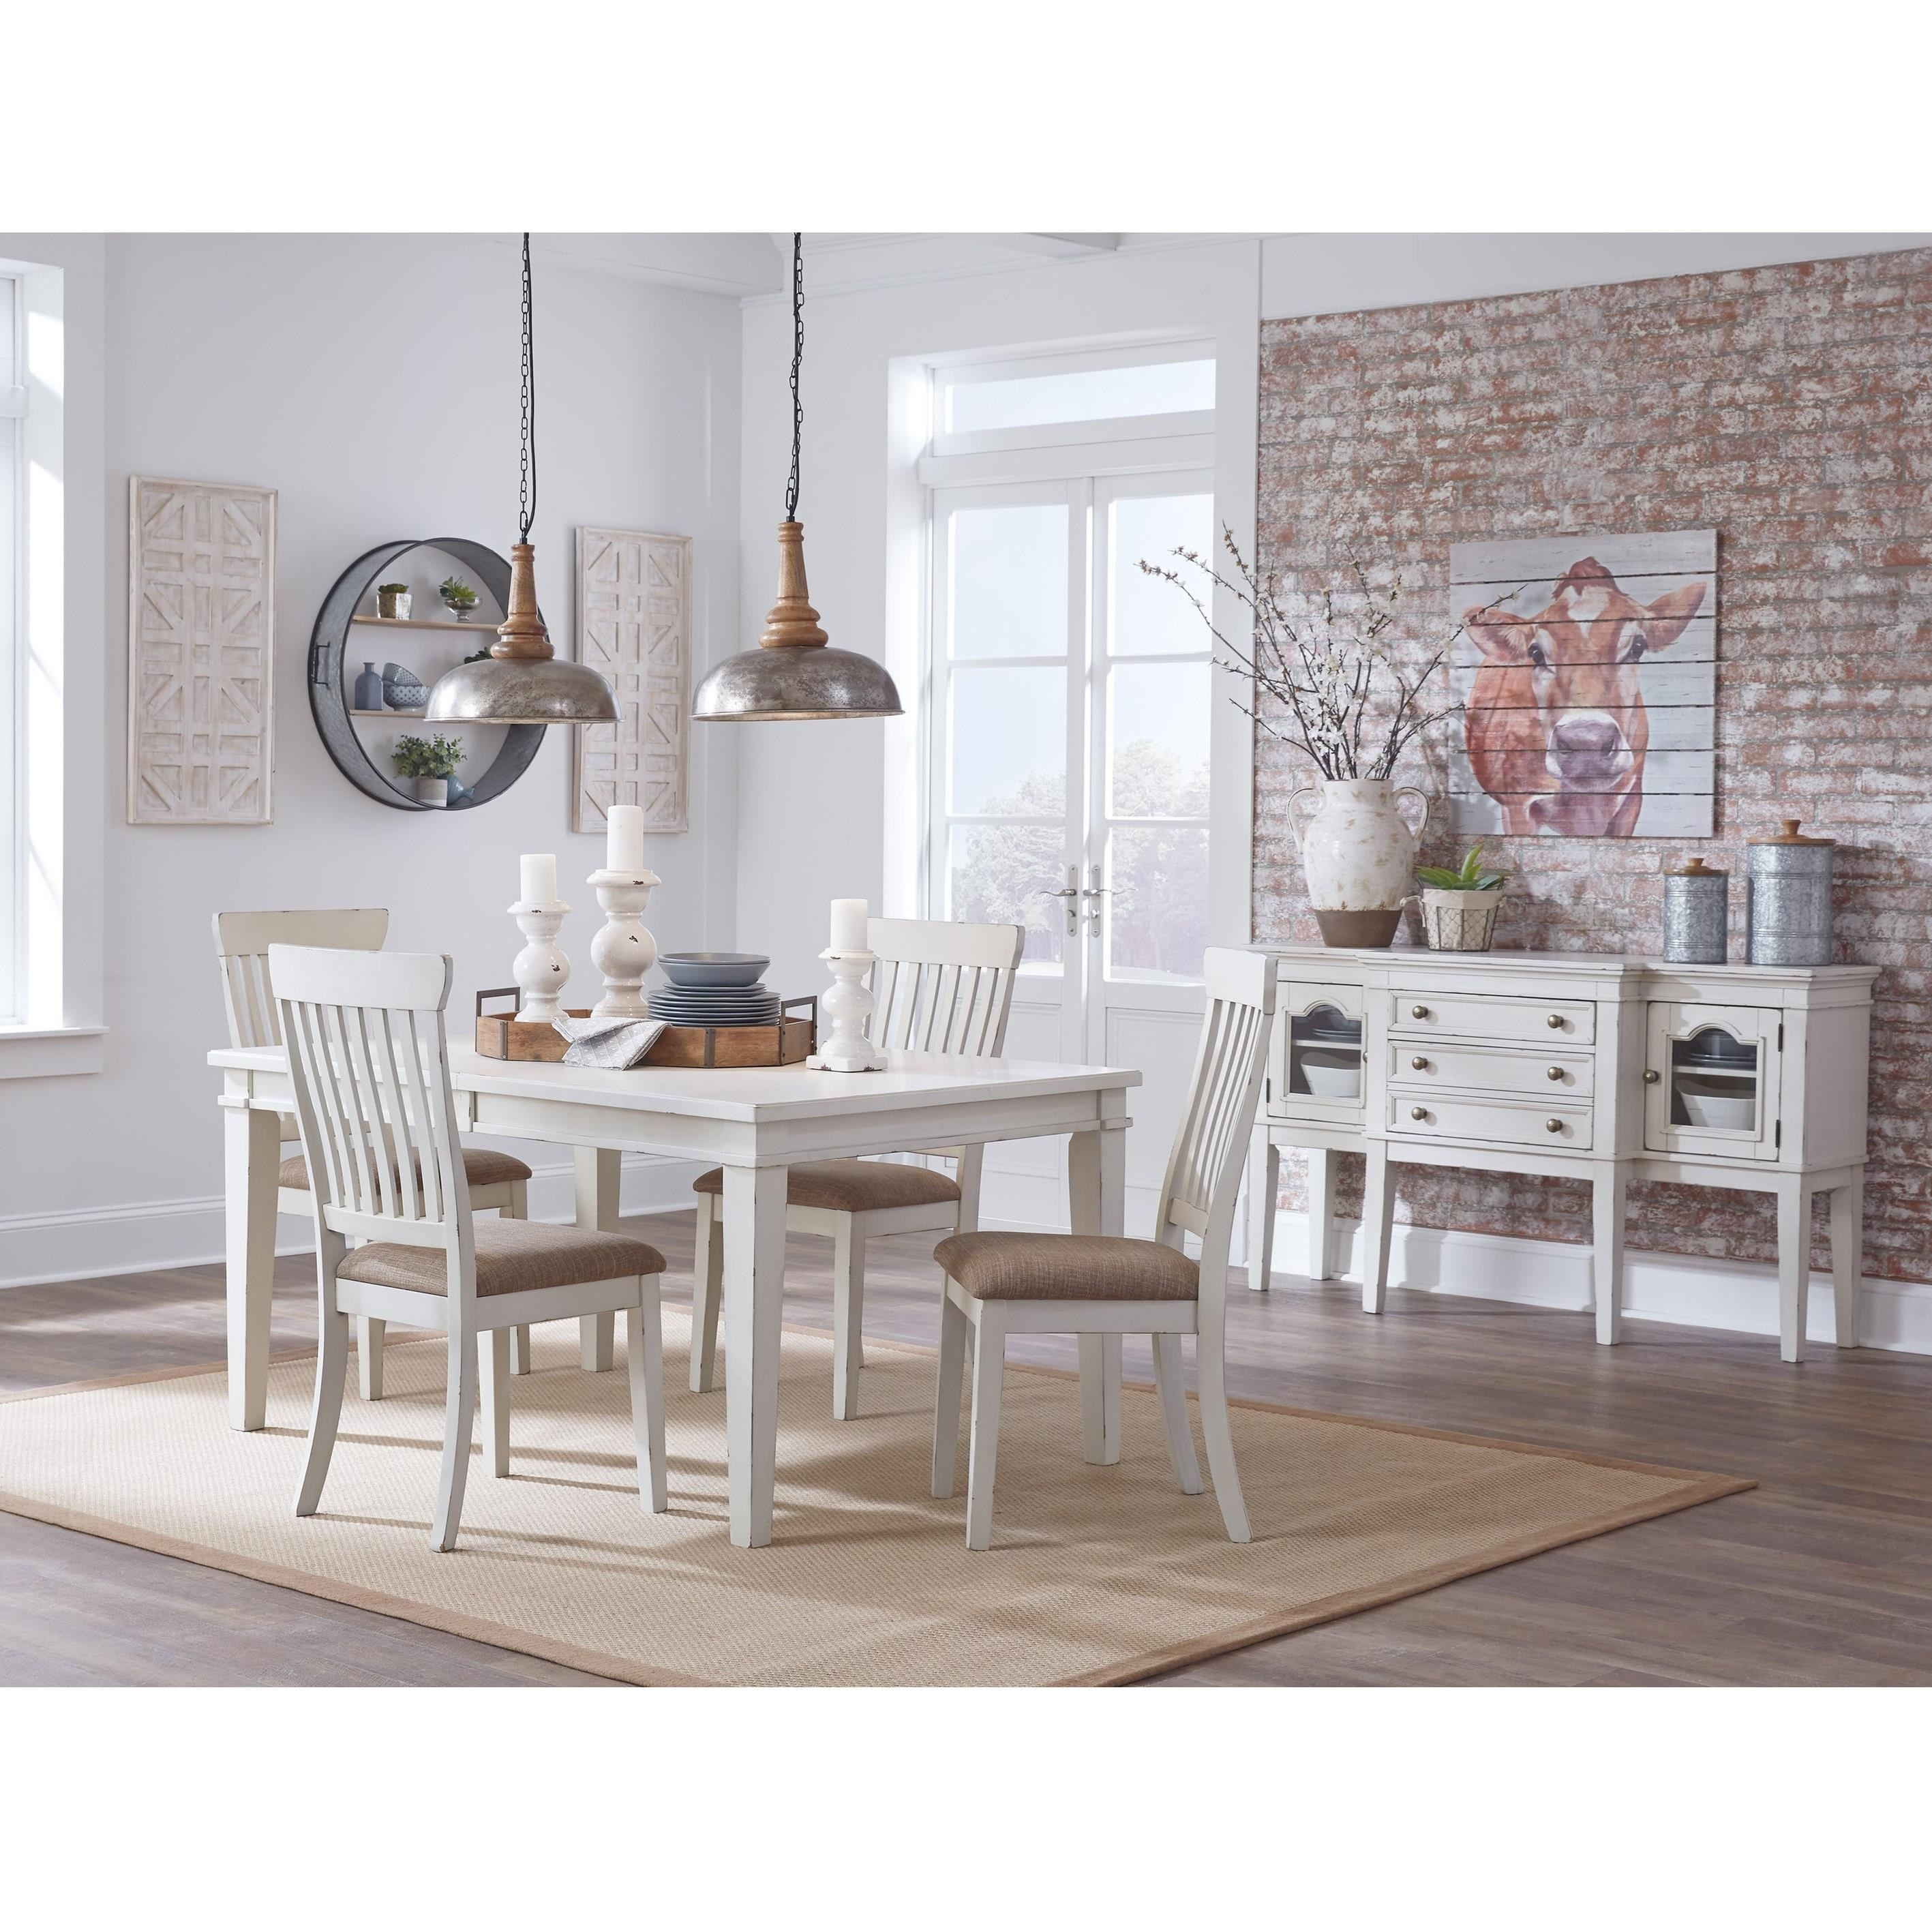 Danbeck Formal Dining Room Group by Signature Design by Ashley at Lapeer Furniture & Mattress Center